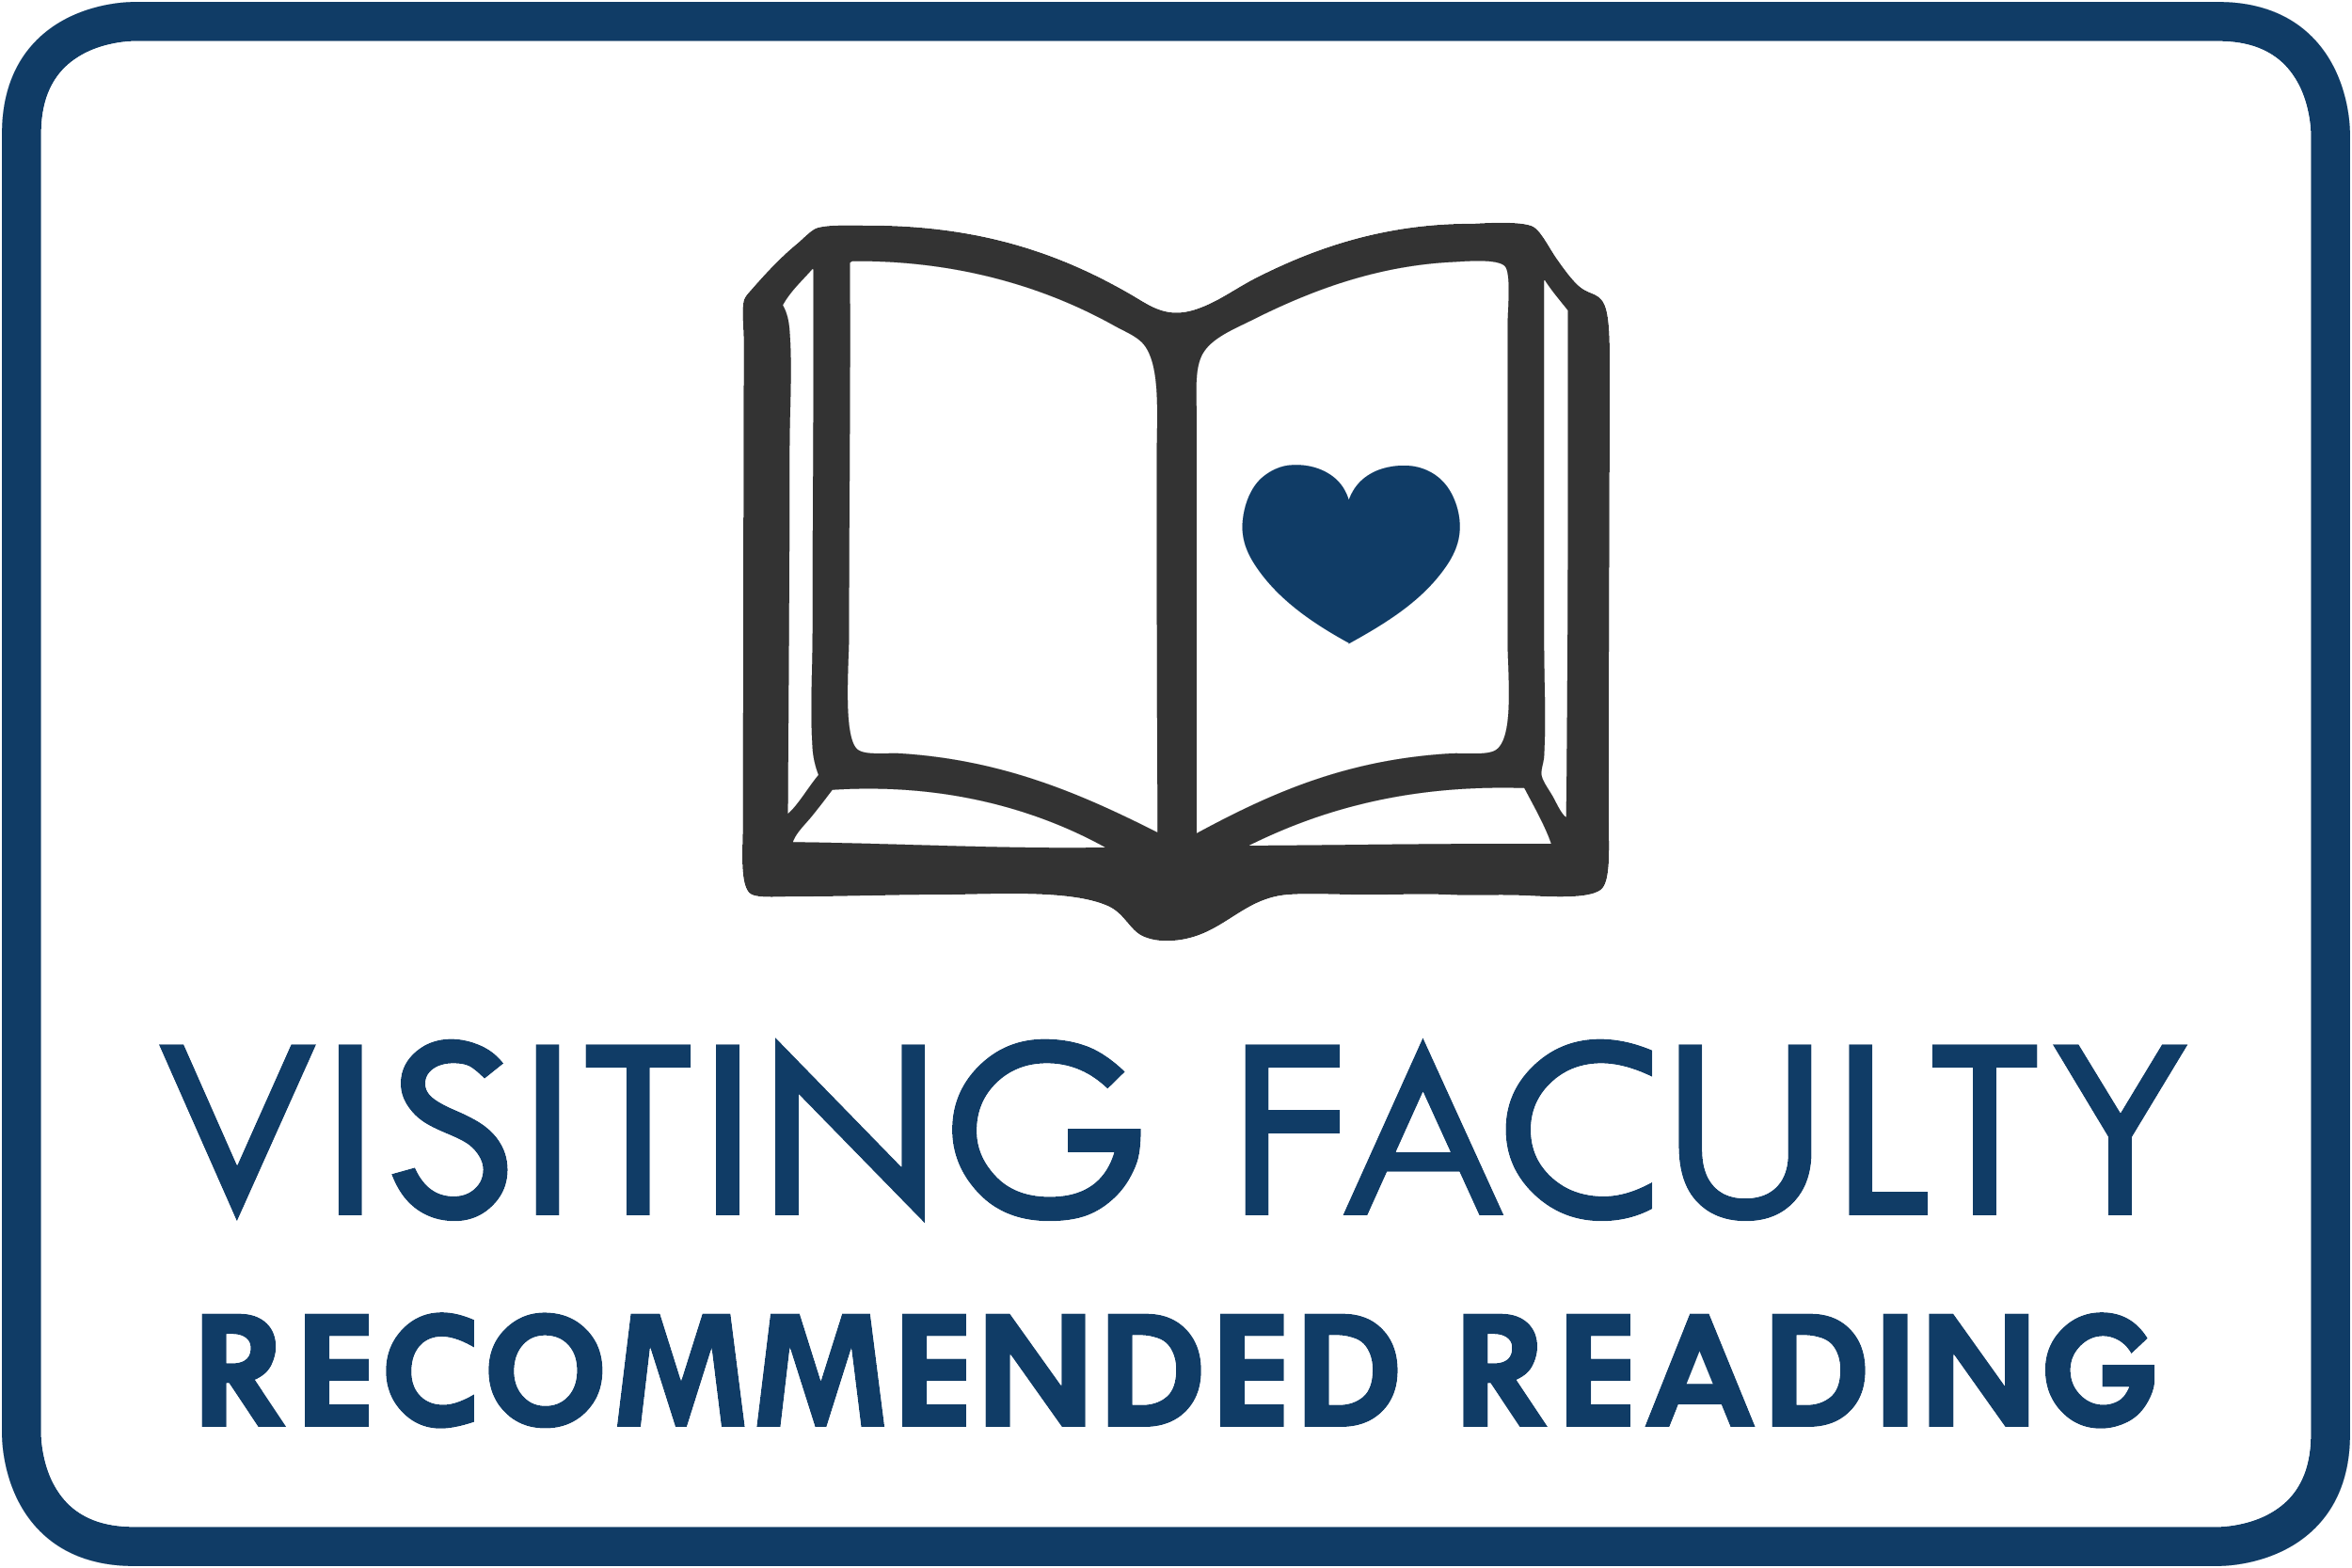 2019 Teaching Faculty Recommended Reading